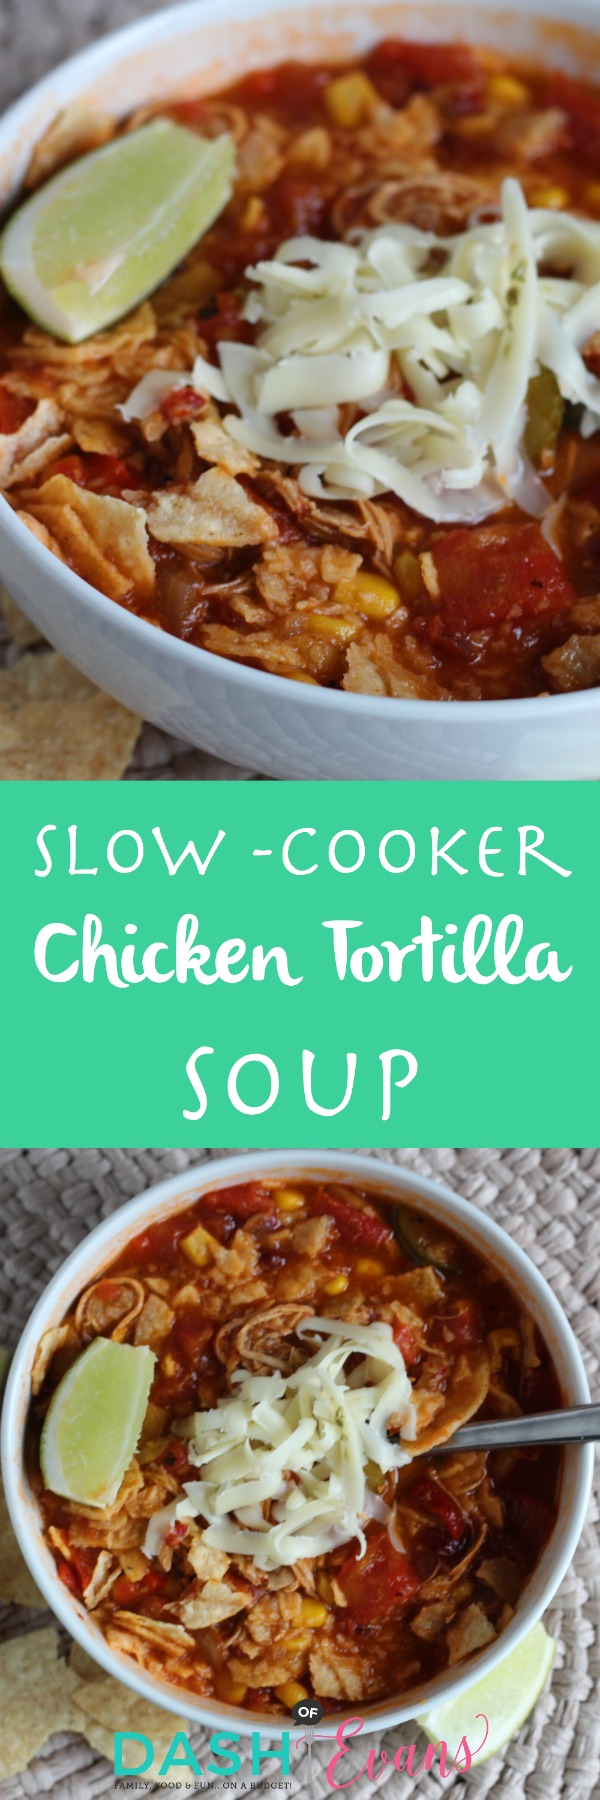 Slow-Cooker Chicken Tortilla Soup. Perfect for any season! via @DashOfEvans